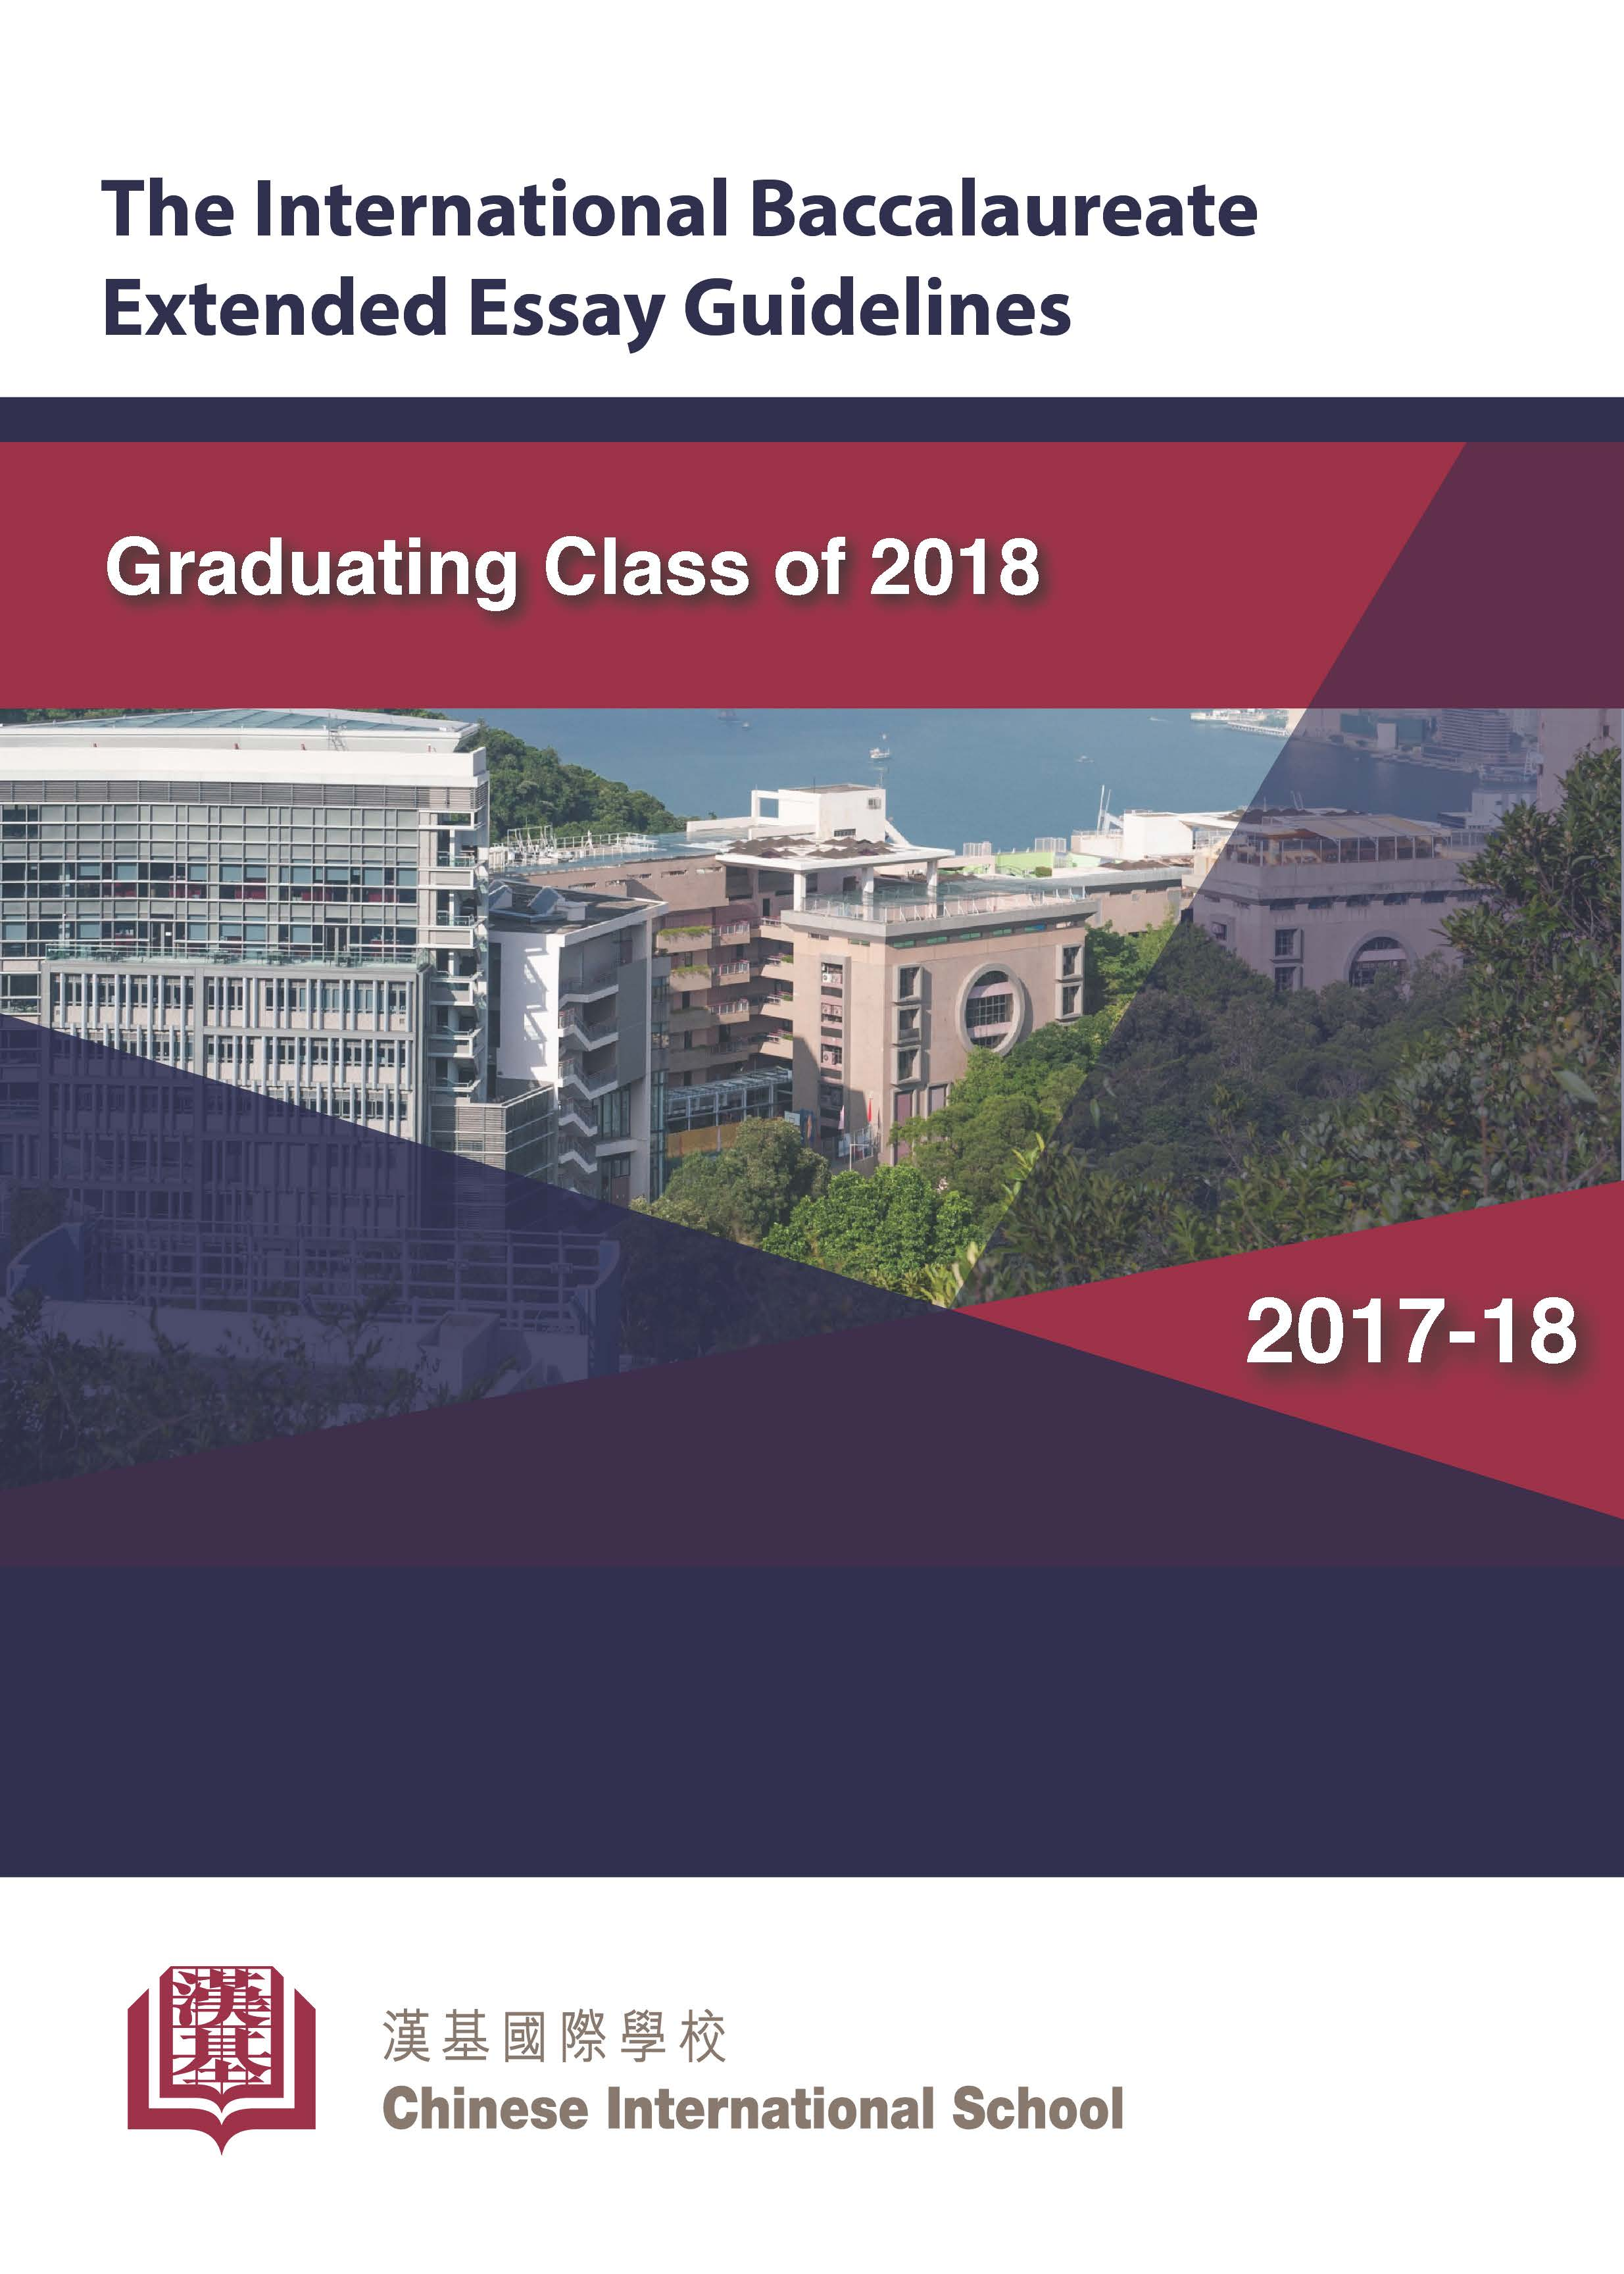 extended essay cis secondary library libguides at chinese 2018 extended essay guidelines